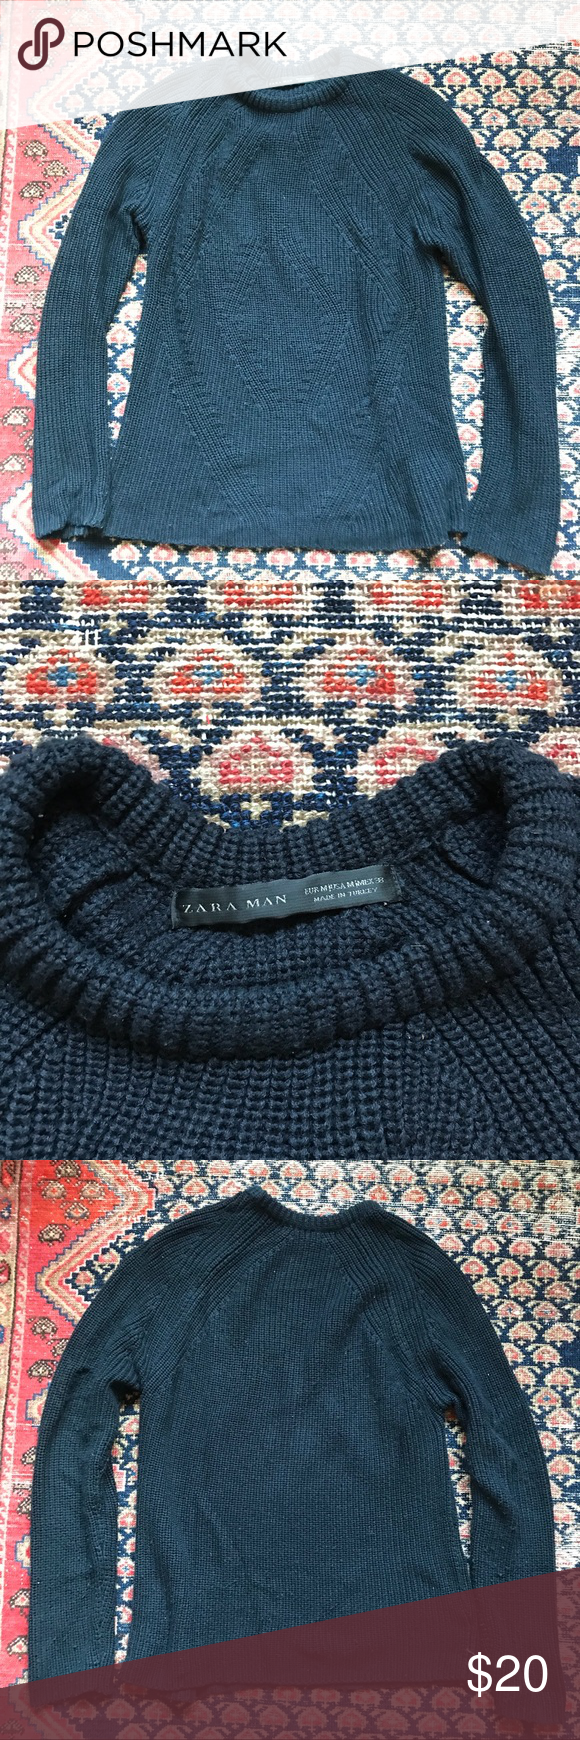 dac1203d ZARA MAN navy cable knit sweater size M ZARA MAN navy cable knit sweater  size medium Diamond knit pattern on front Great for layering!